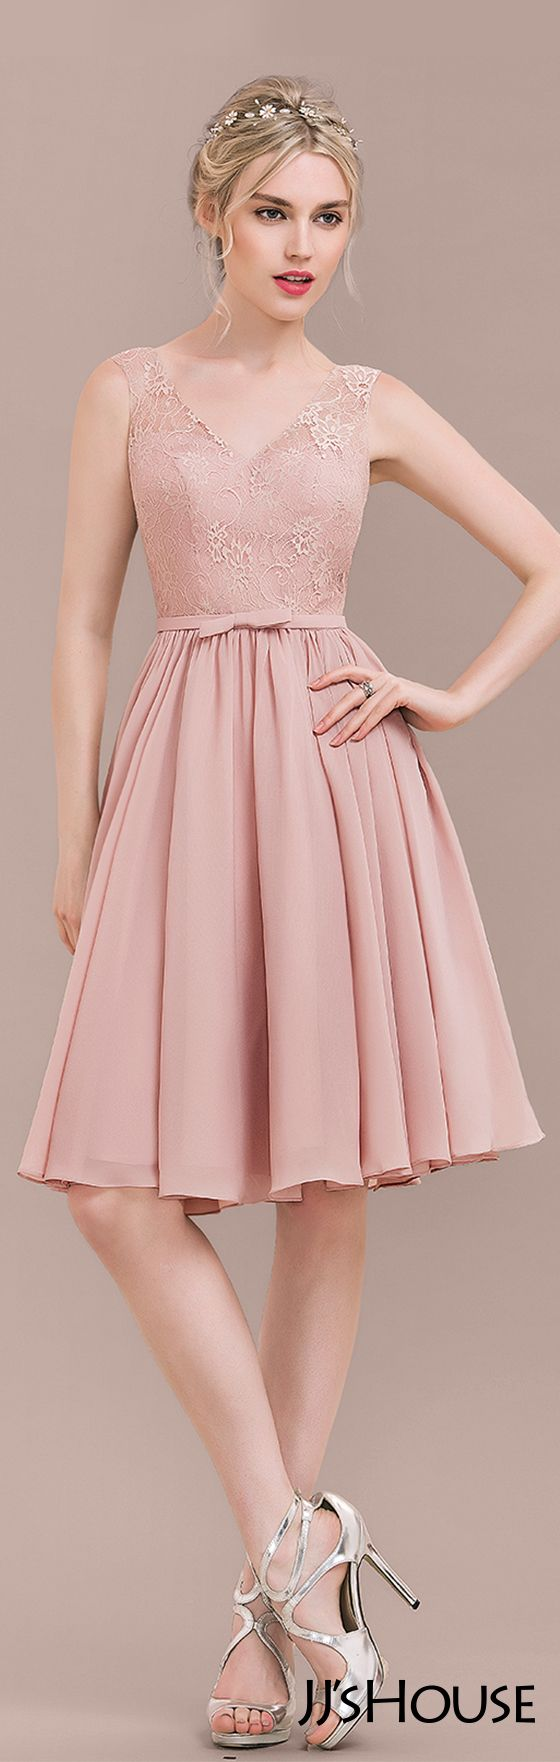 JJsHouse #Bridesmaid | dress | Pinterest | Vestiditos, Vestidos de ...